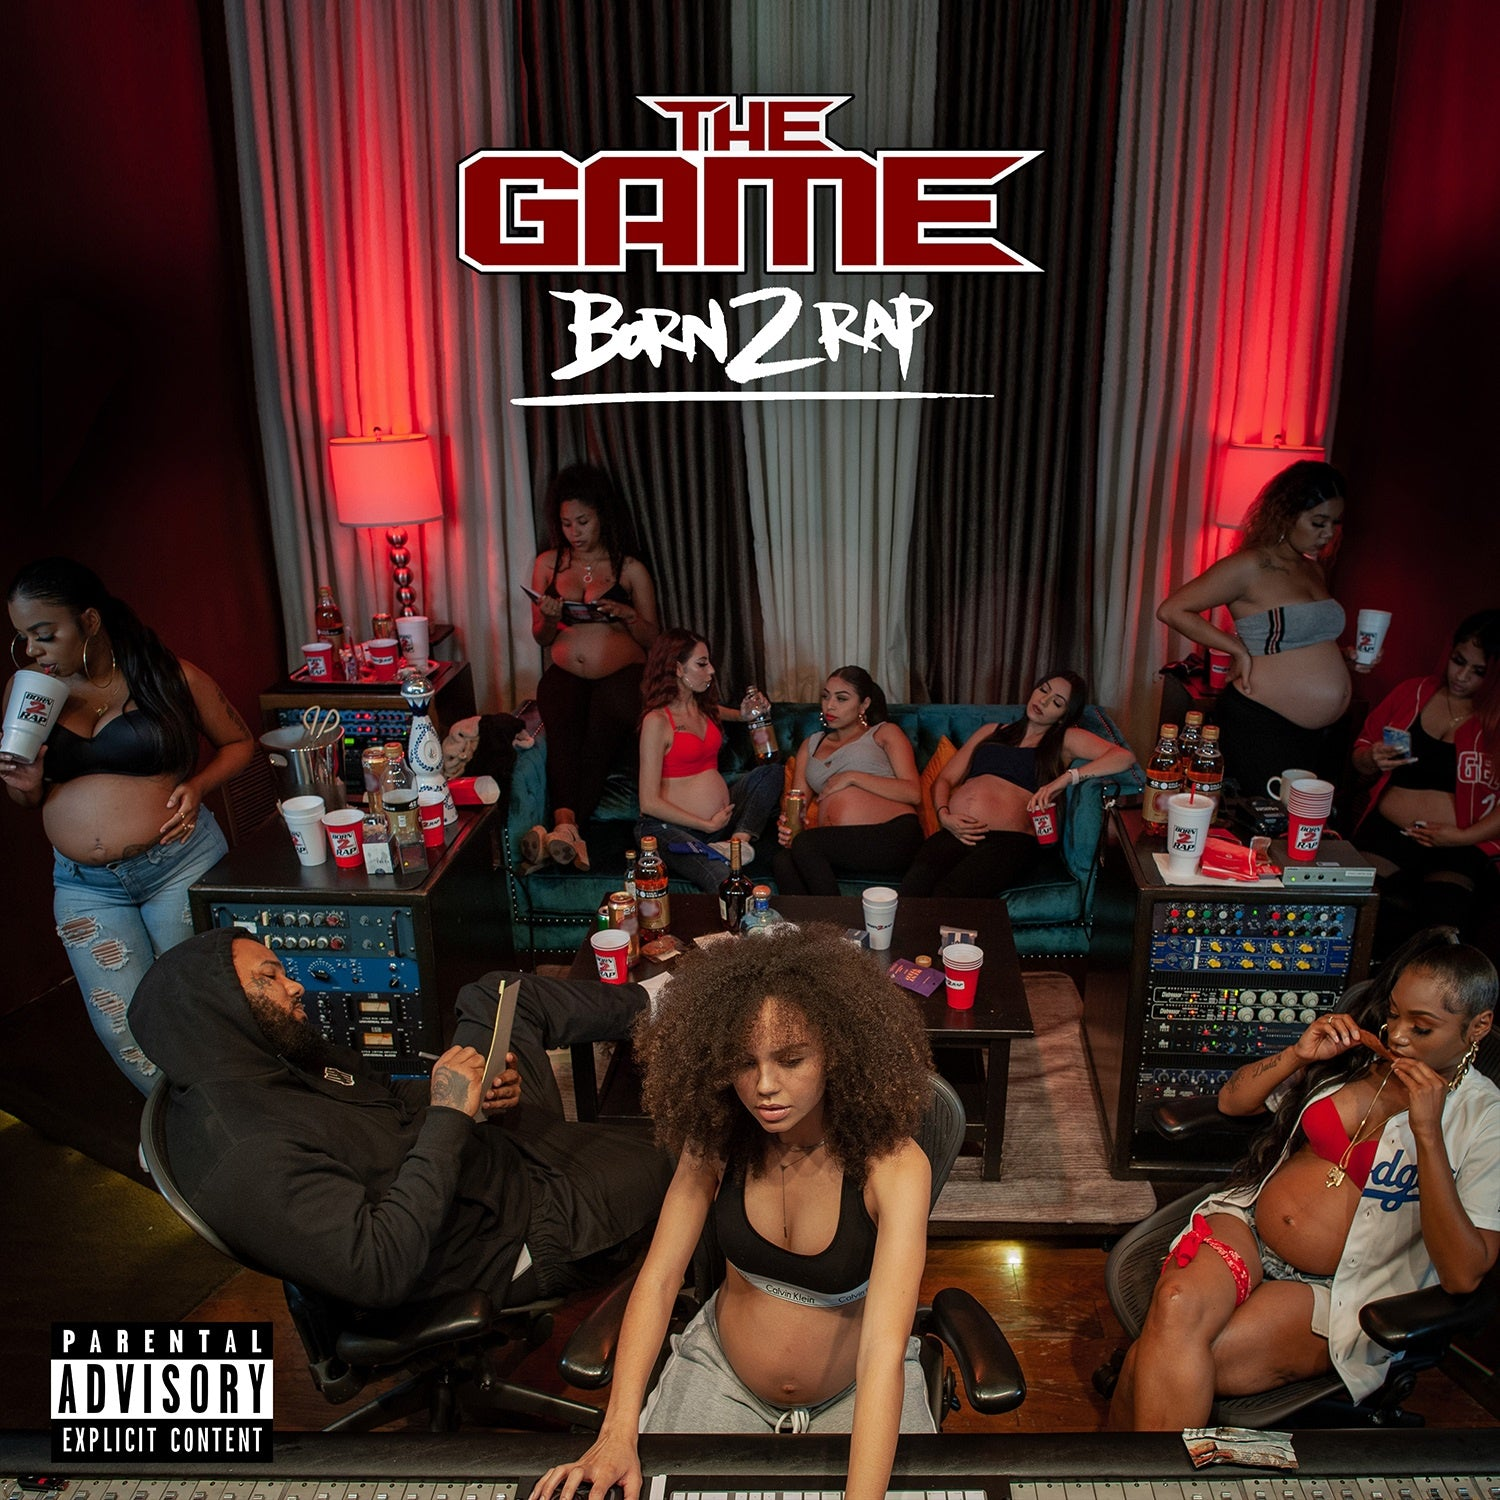 The Game - Born 2 Rap (2019) - New 3 Lp Record Store Day 2020 eOne USA RSD Red, White and Blue Vinyl & Download - Hip Hop